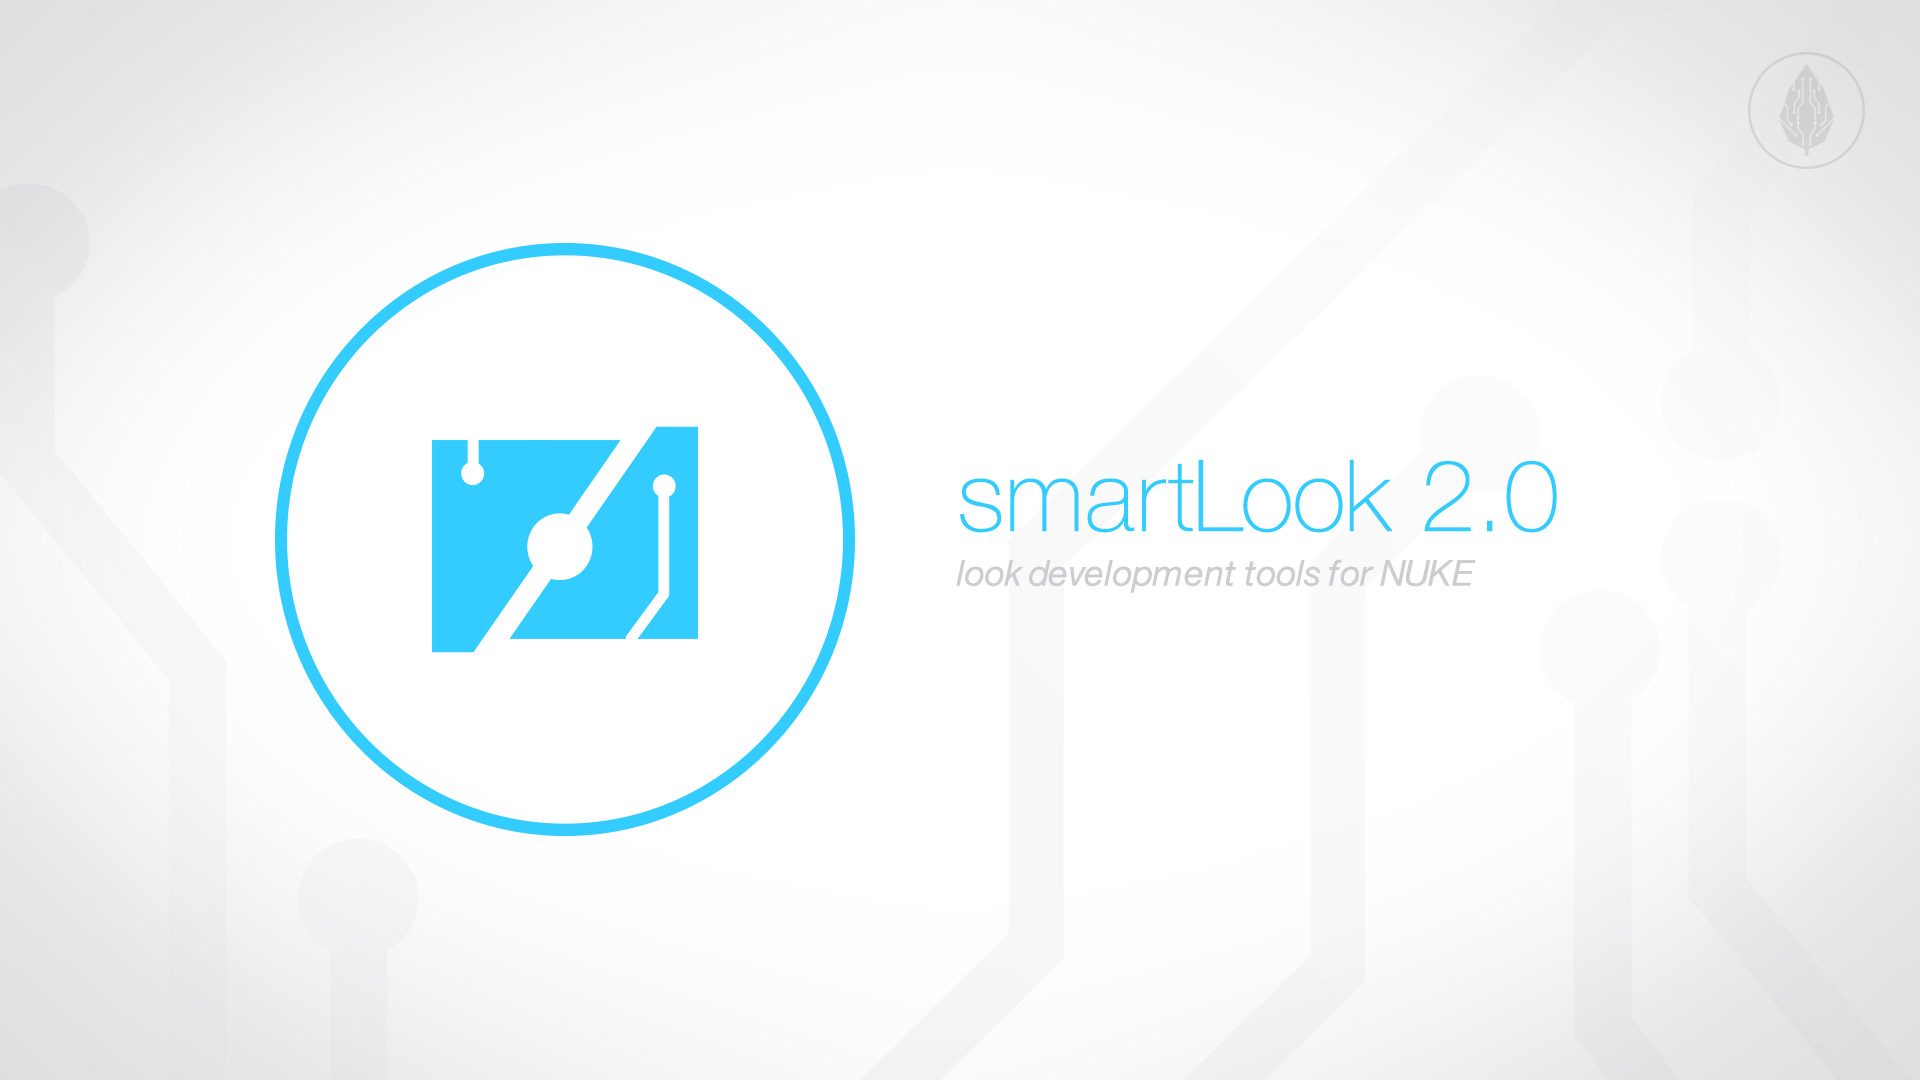 Published smartLook 2.0